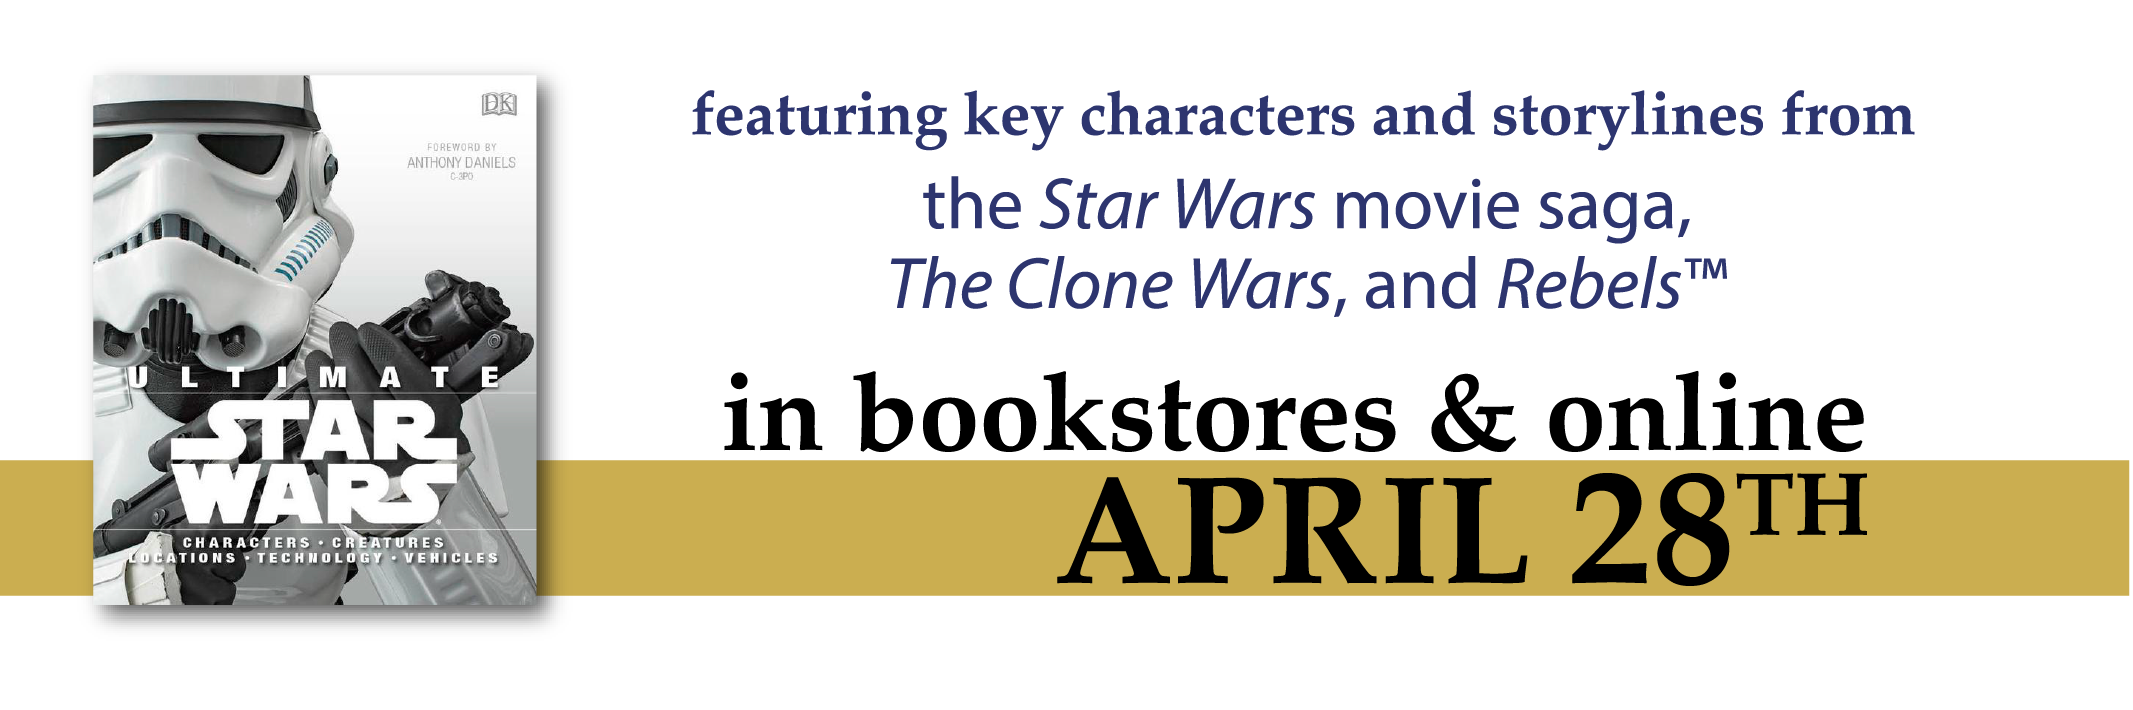 Ultimate Star Wars is available April 28th.